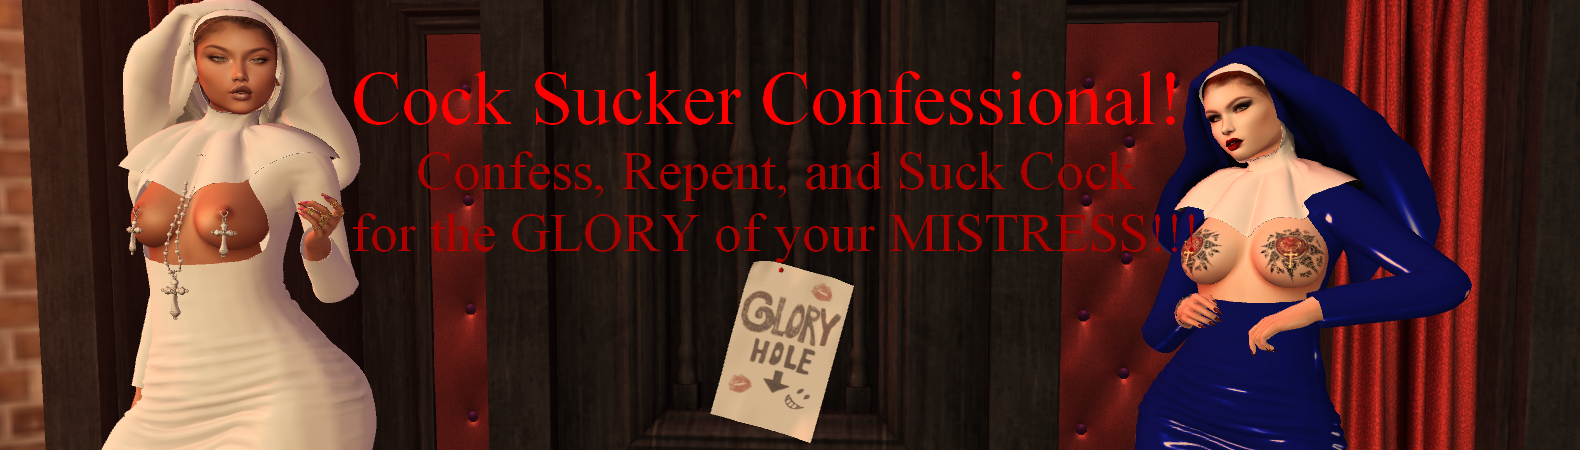 cock sucker confessional event 800 601 7259